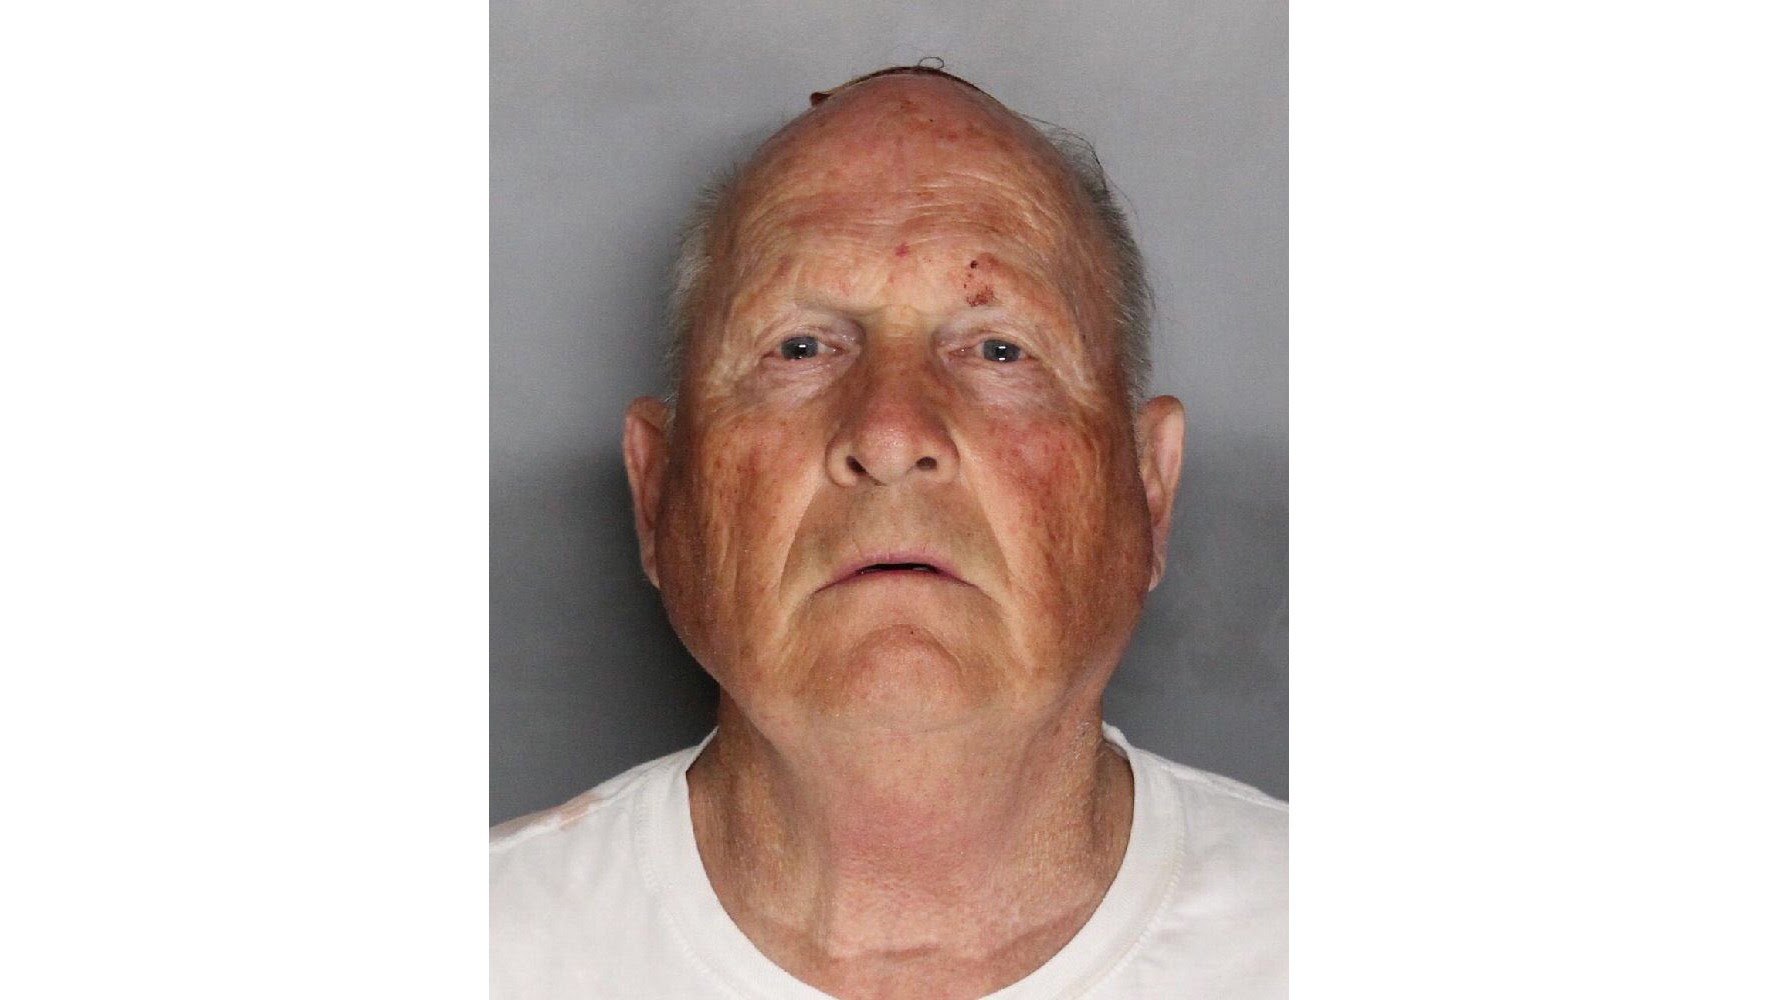 Sacramento County District Attorney announced on Wednesday the arrest of Joseph James DeAngelo, 72,